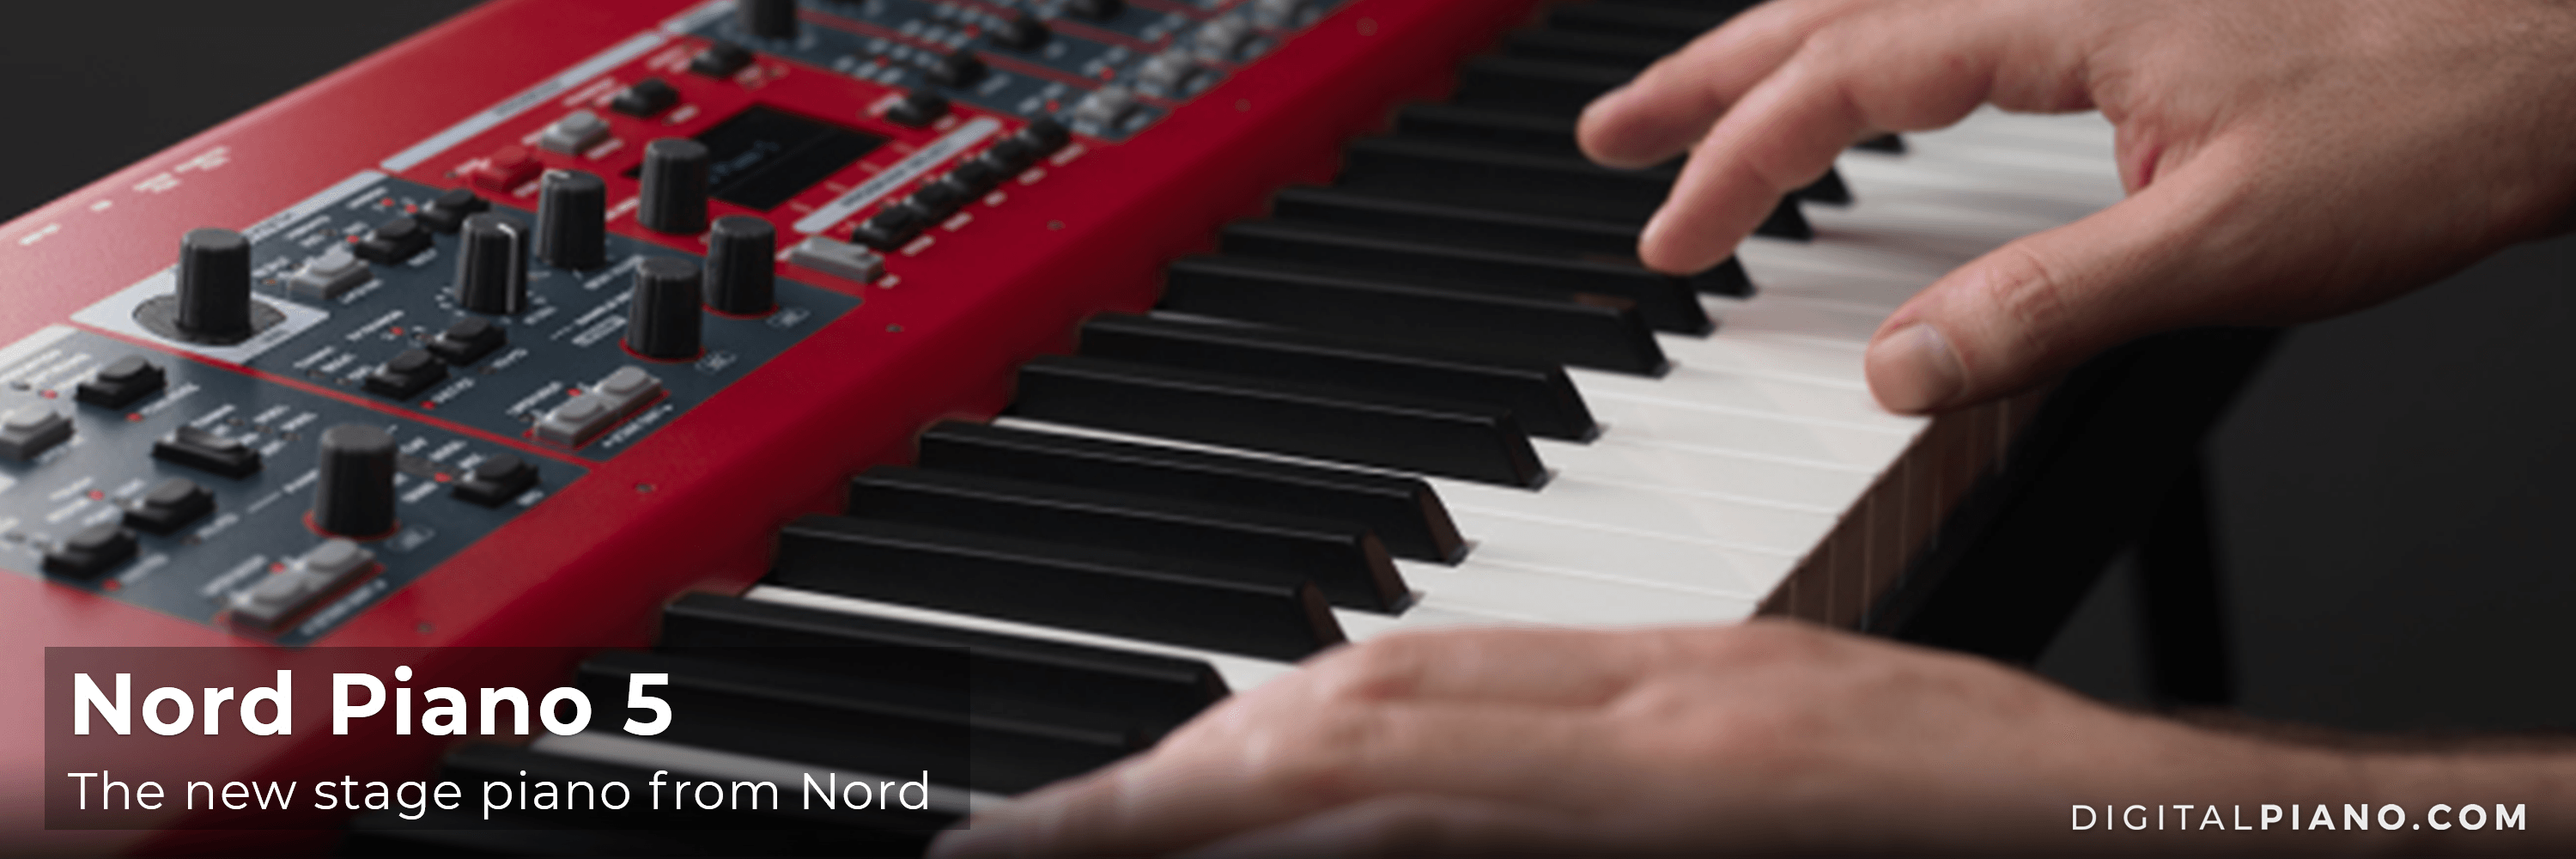 The new Nord Piano 5